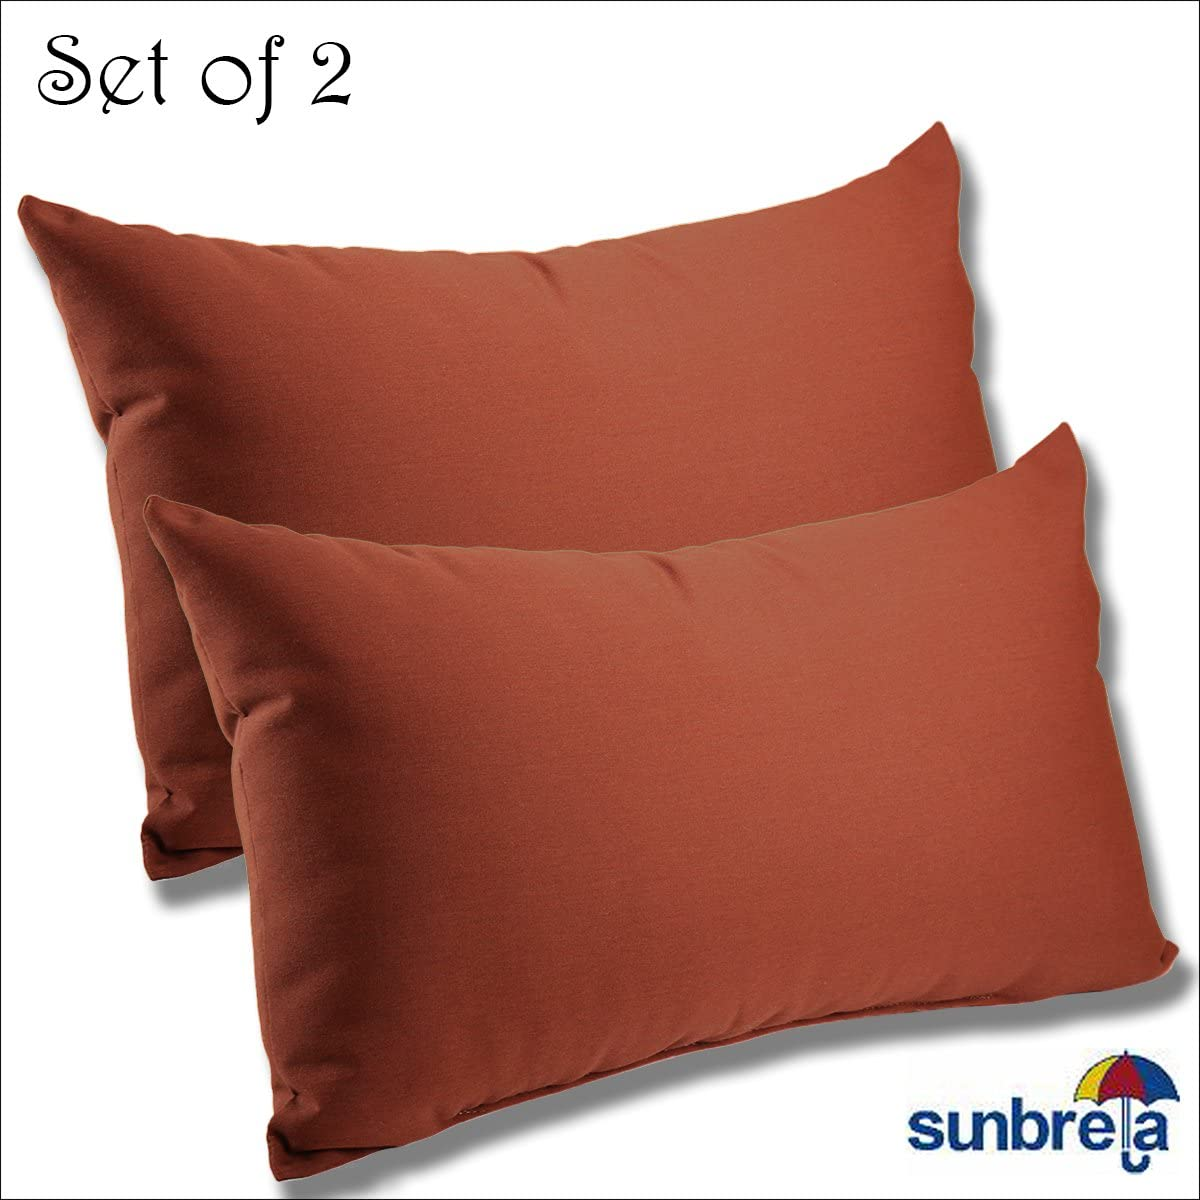 SET OF 2-22x12x4 Sunbrella Indoor Outdoor Fabrics LUMBAR PILLOWS in Henna by Comfort Classics Inc.